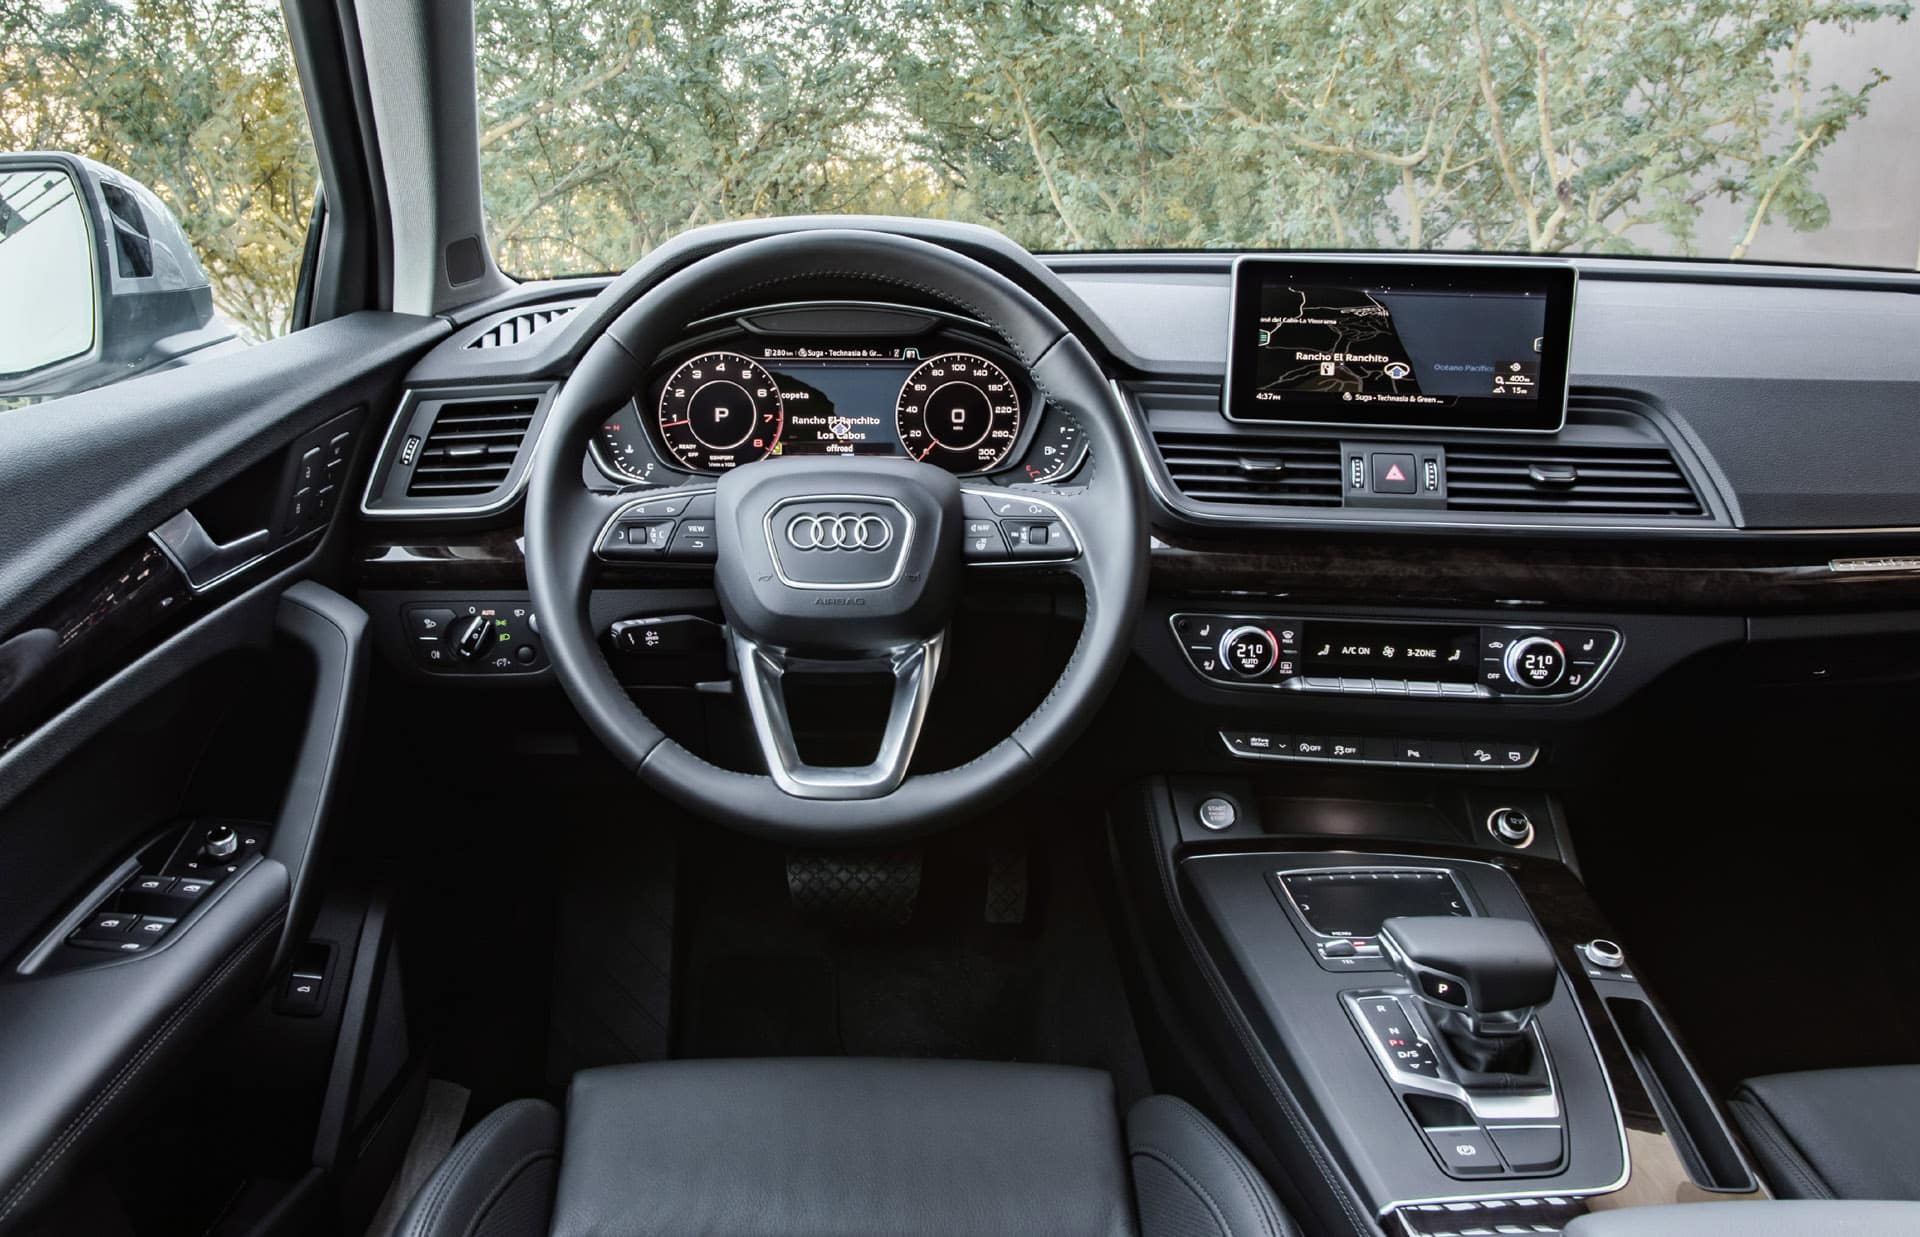 Audi Q5 Vs Bmw X3 How Do They Stack Up Against Each Other